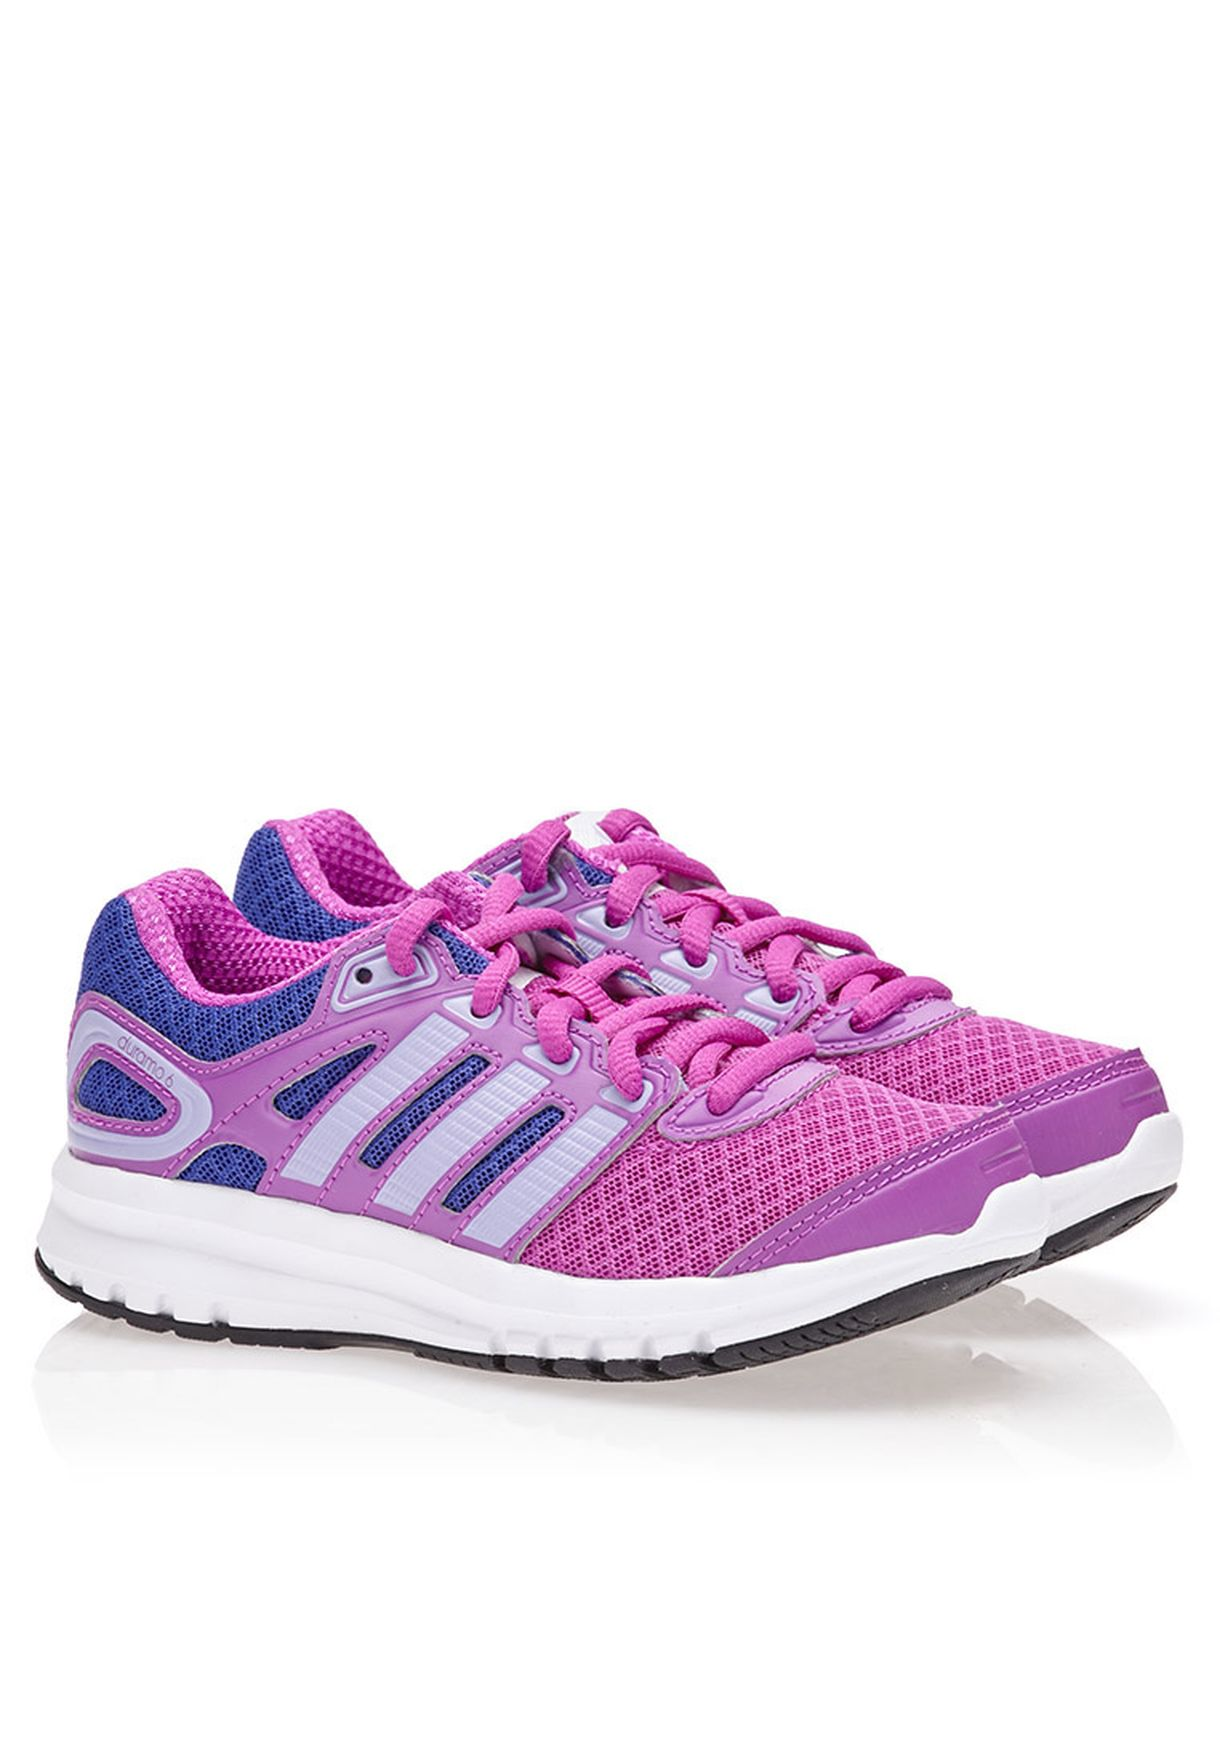 check out 0fb29 eb767 Shop adidas purple Duramo 6 Kids B26511 for Kids in UAE - AD476SH87PHK